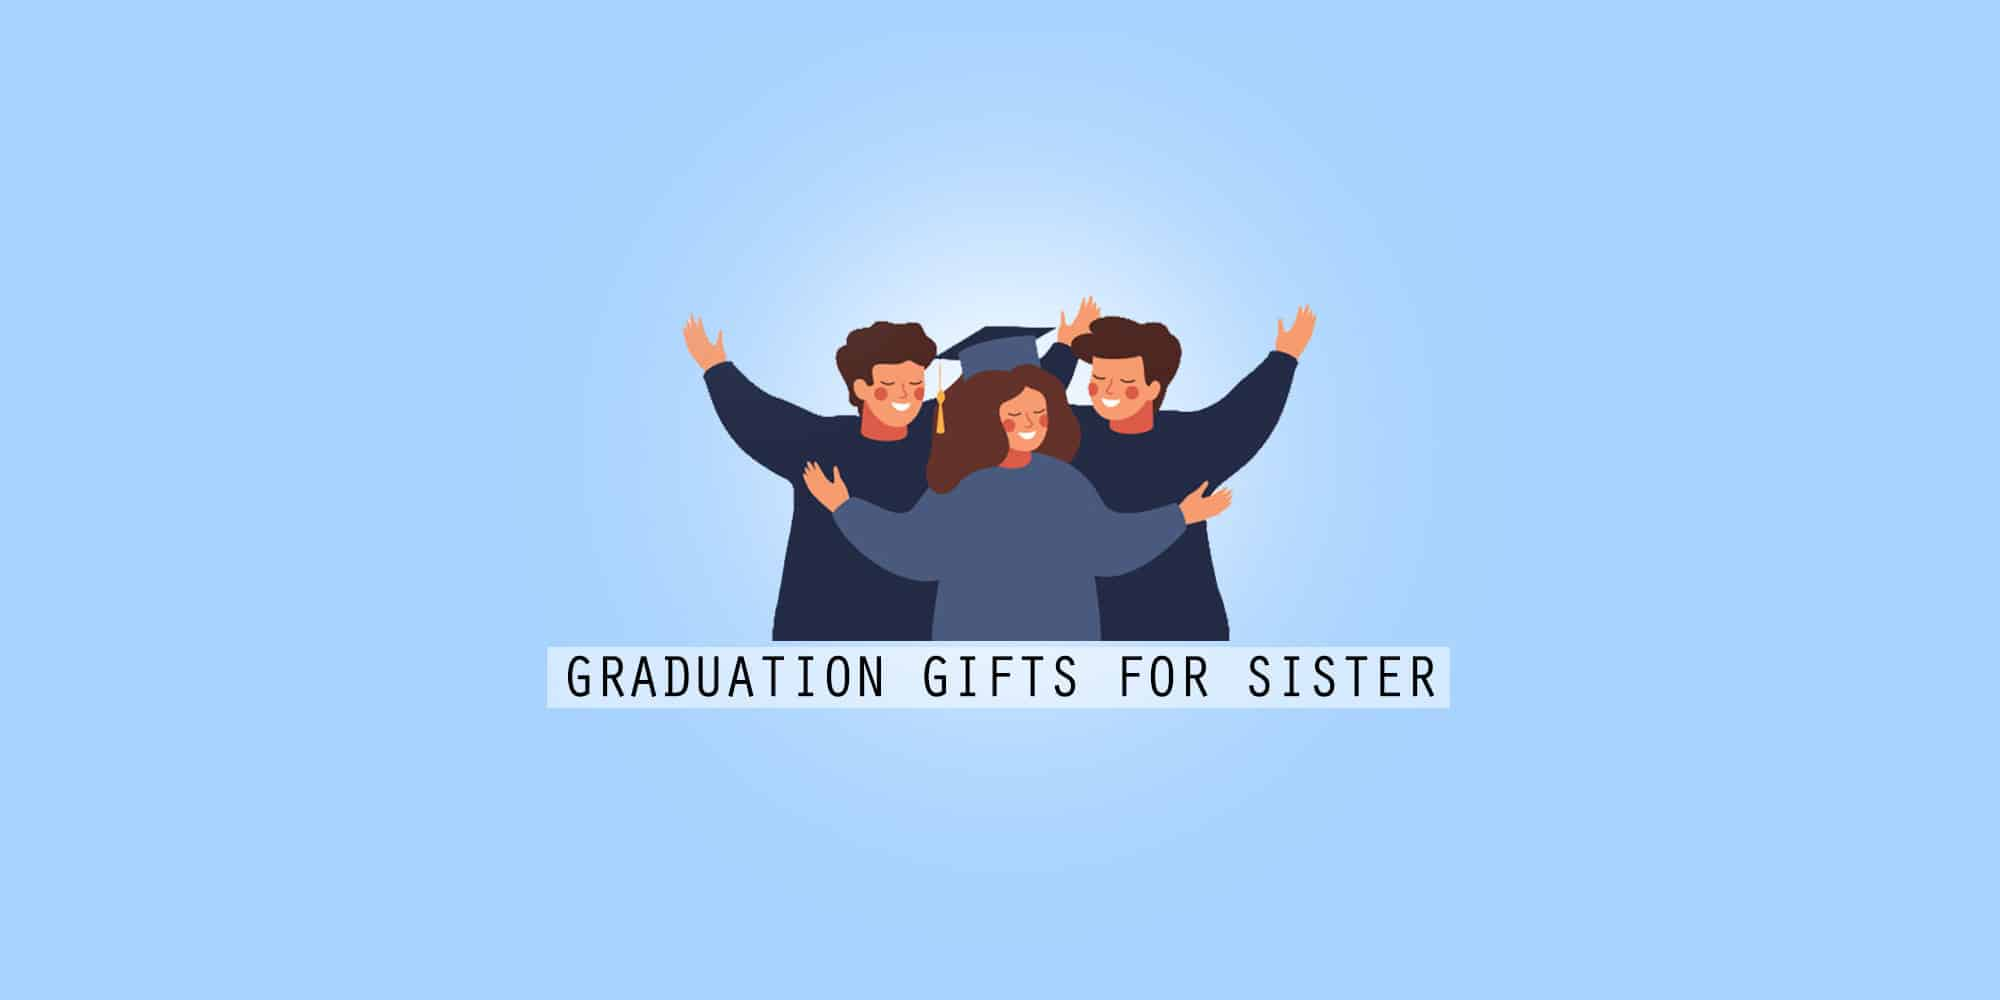 35 Best Graduation Gifts For Your Sister To Congratulate Her (2021)